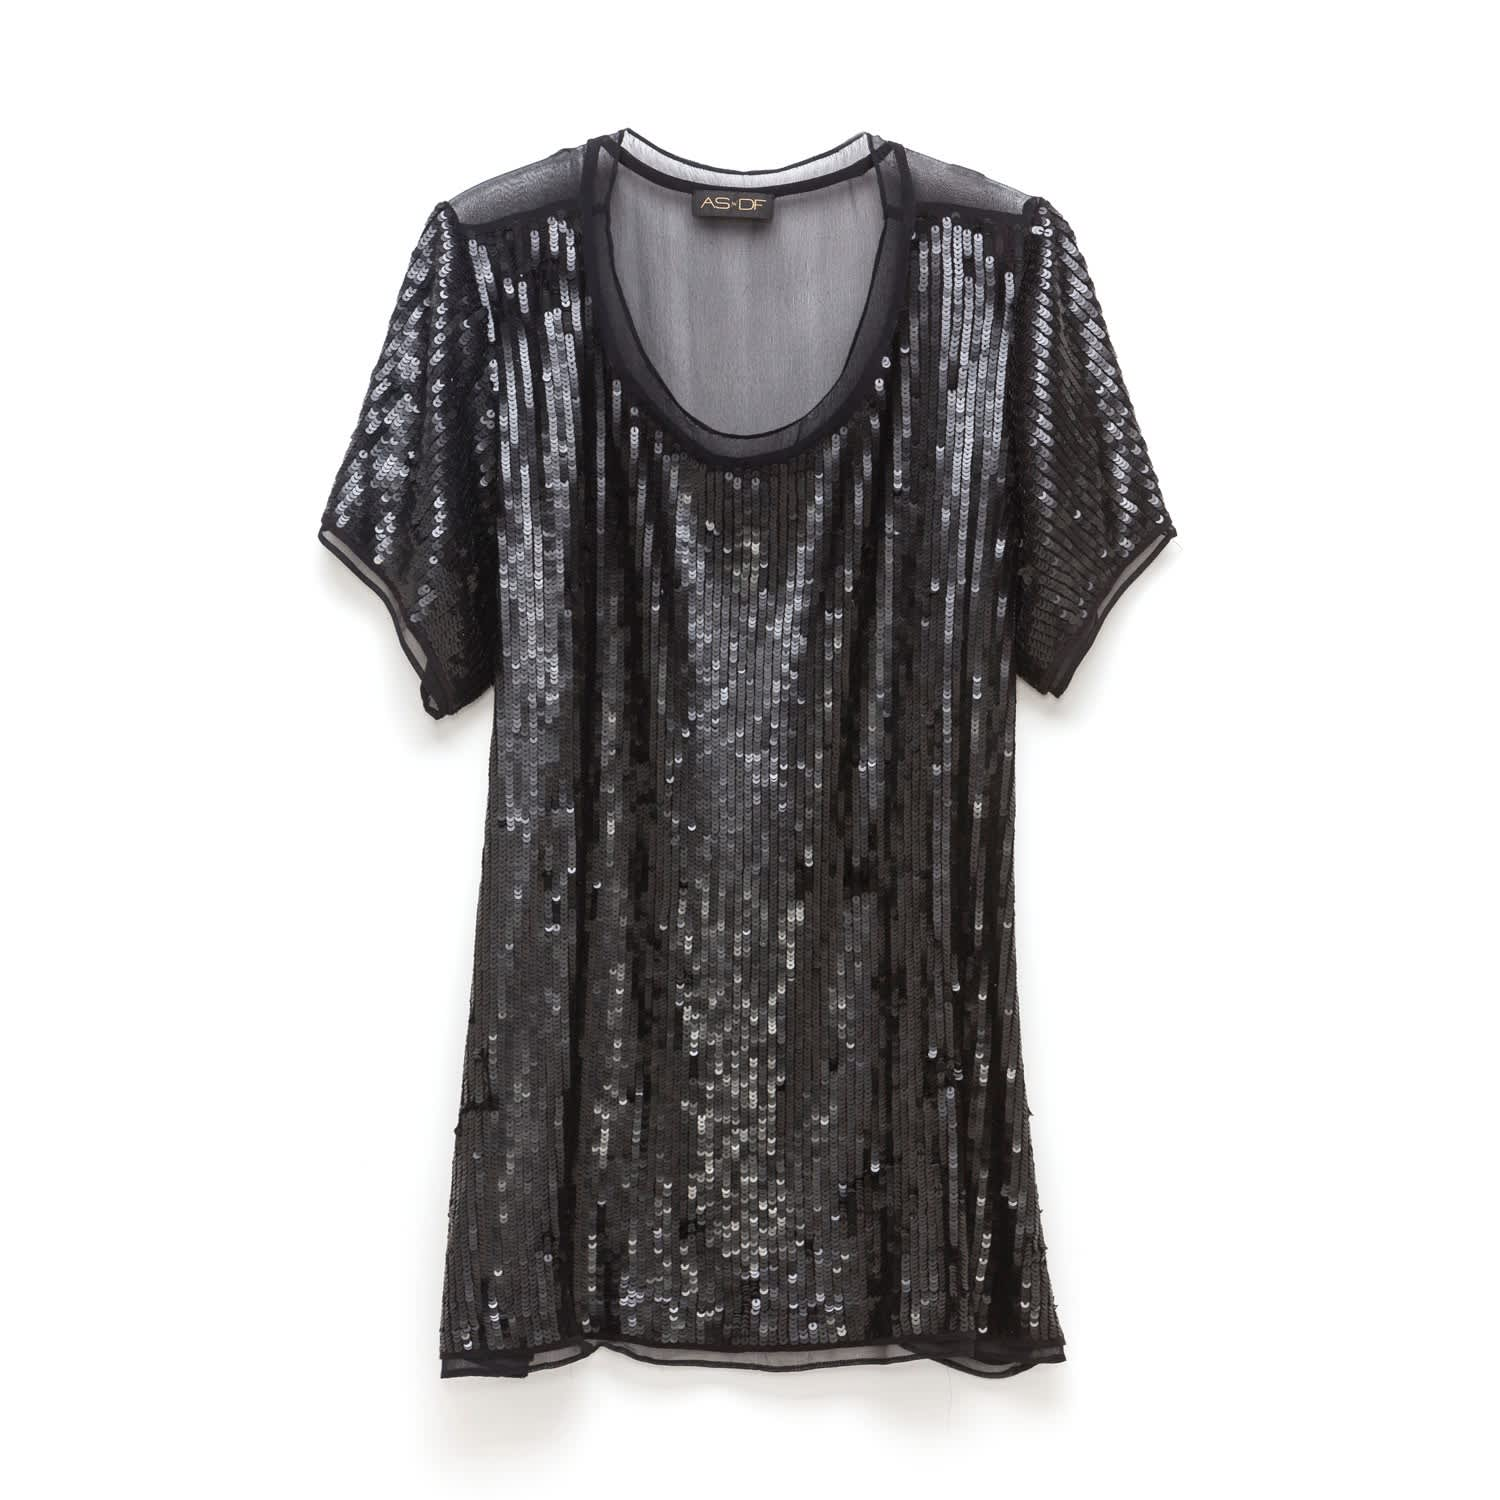 Geneva Luxe Matte Sequin Tee by AS by DF